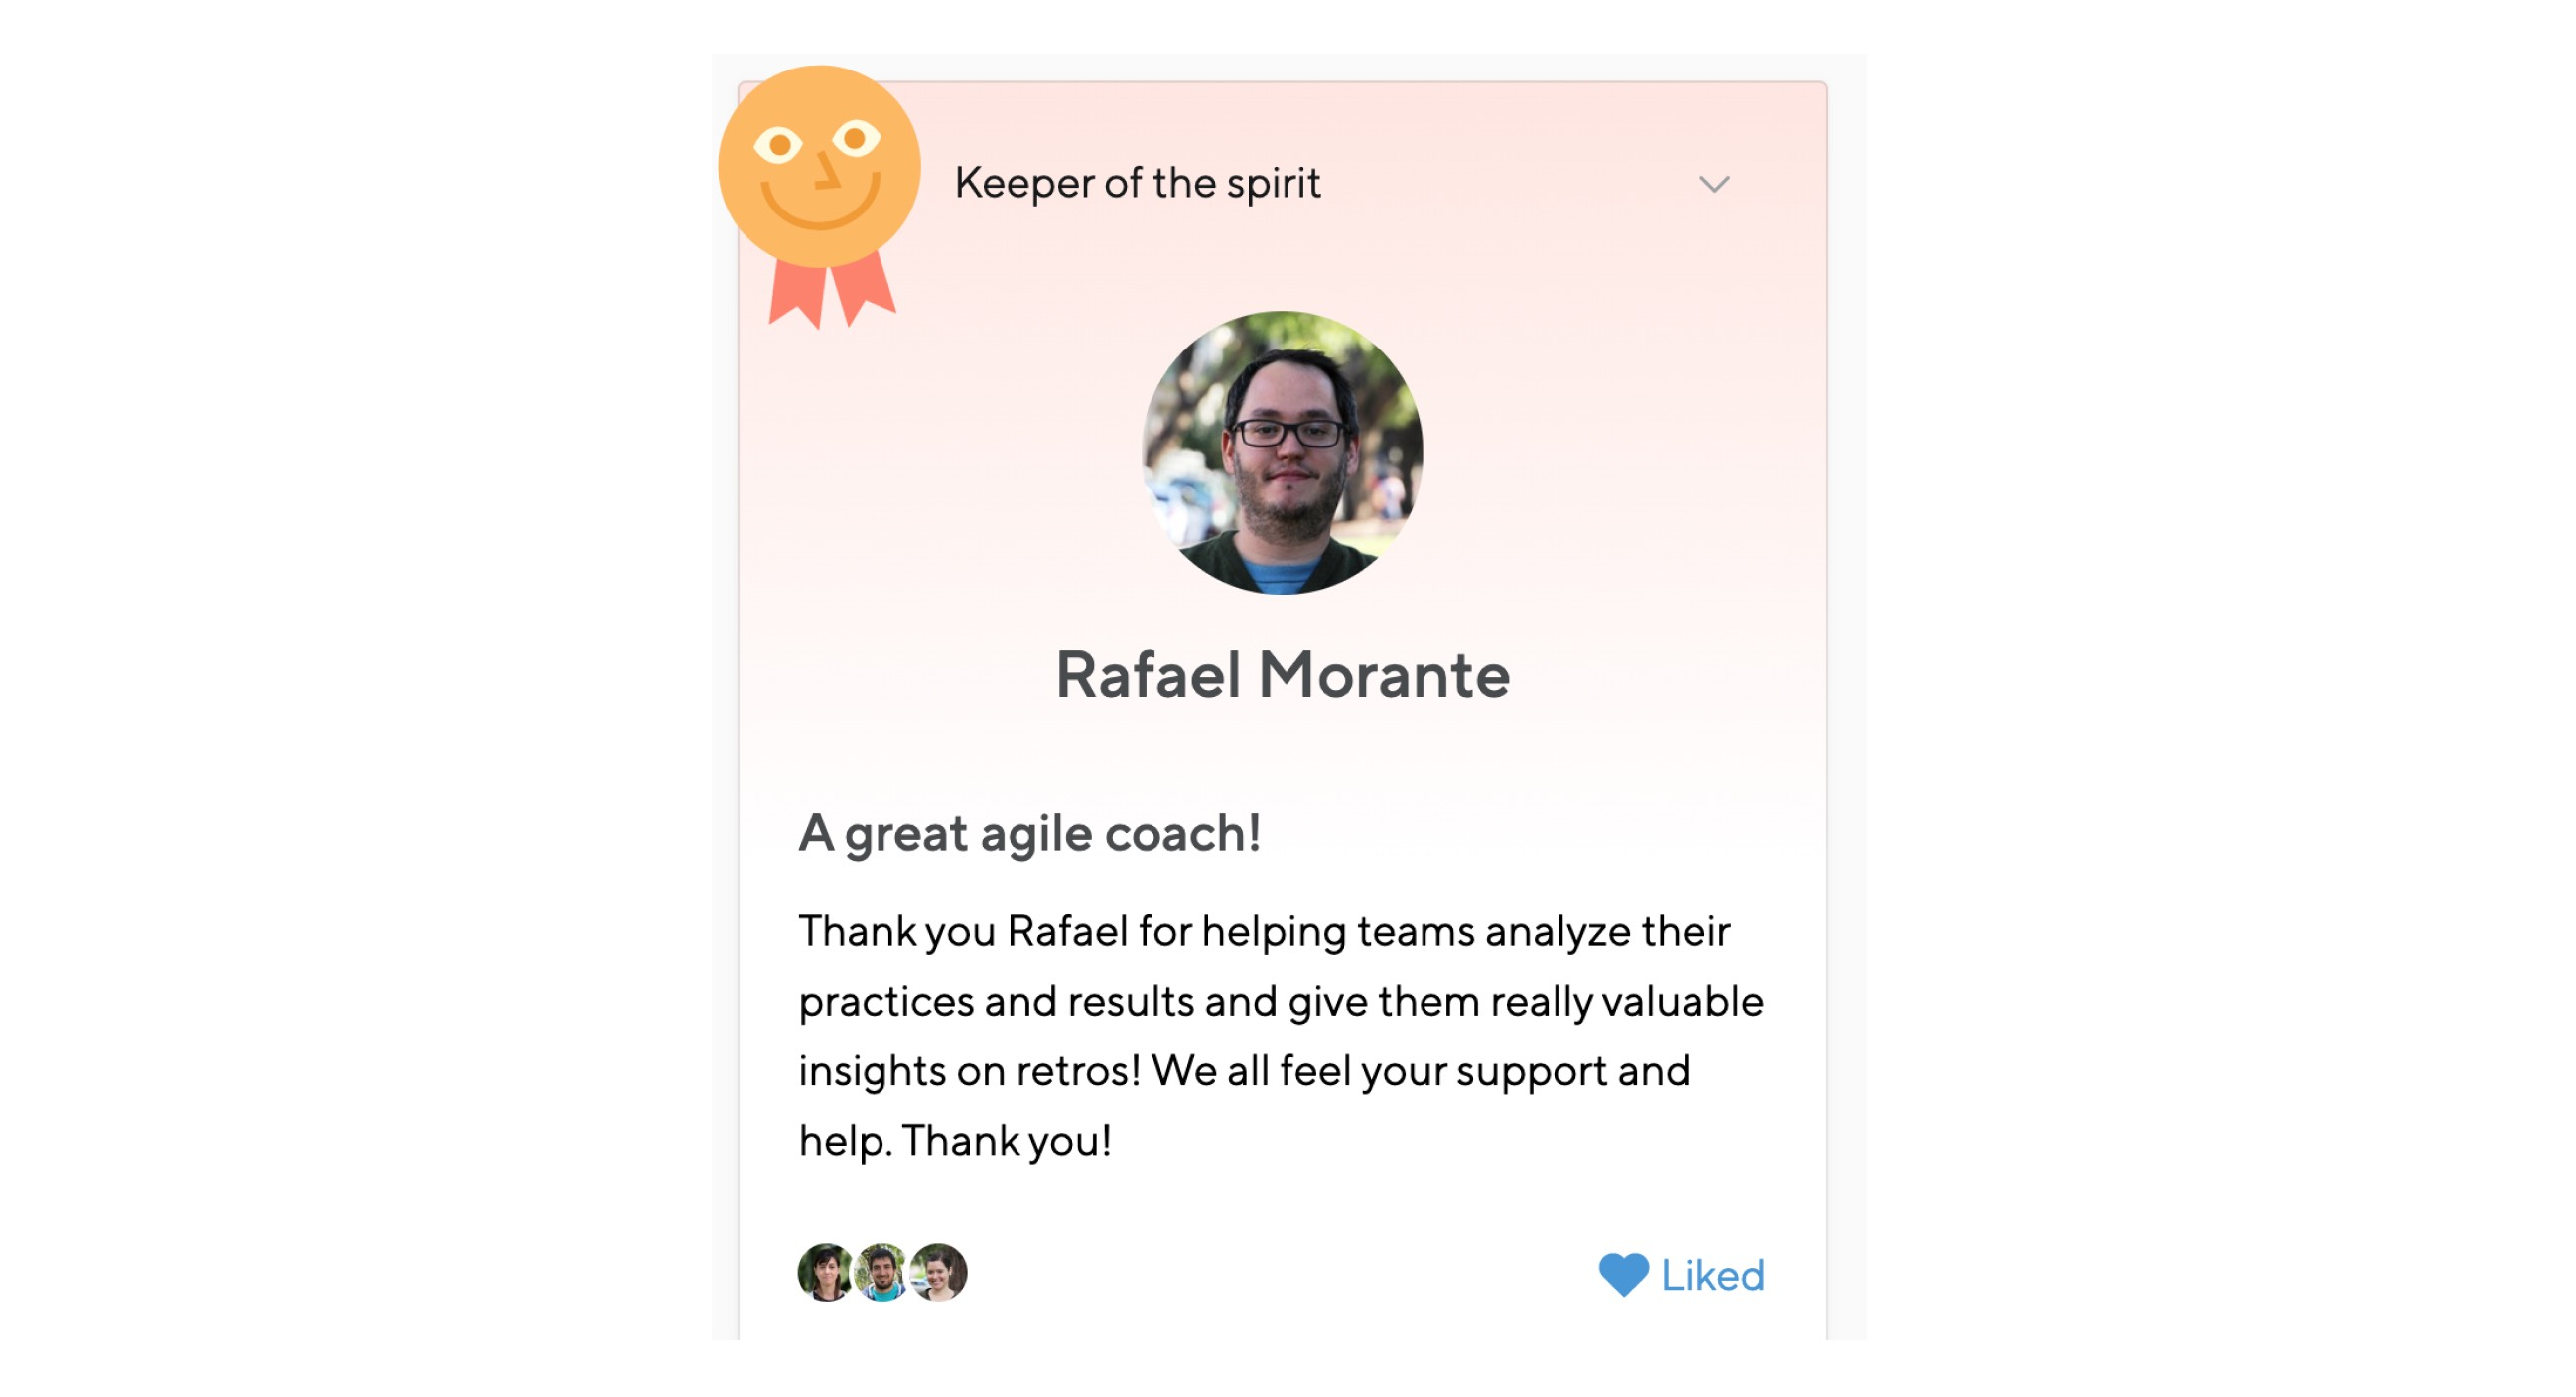 An example of how we use the Praise tool on Small Improvements to recognize valuable contributions to the team.